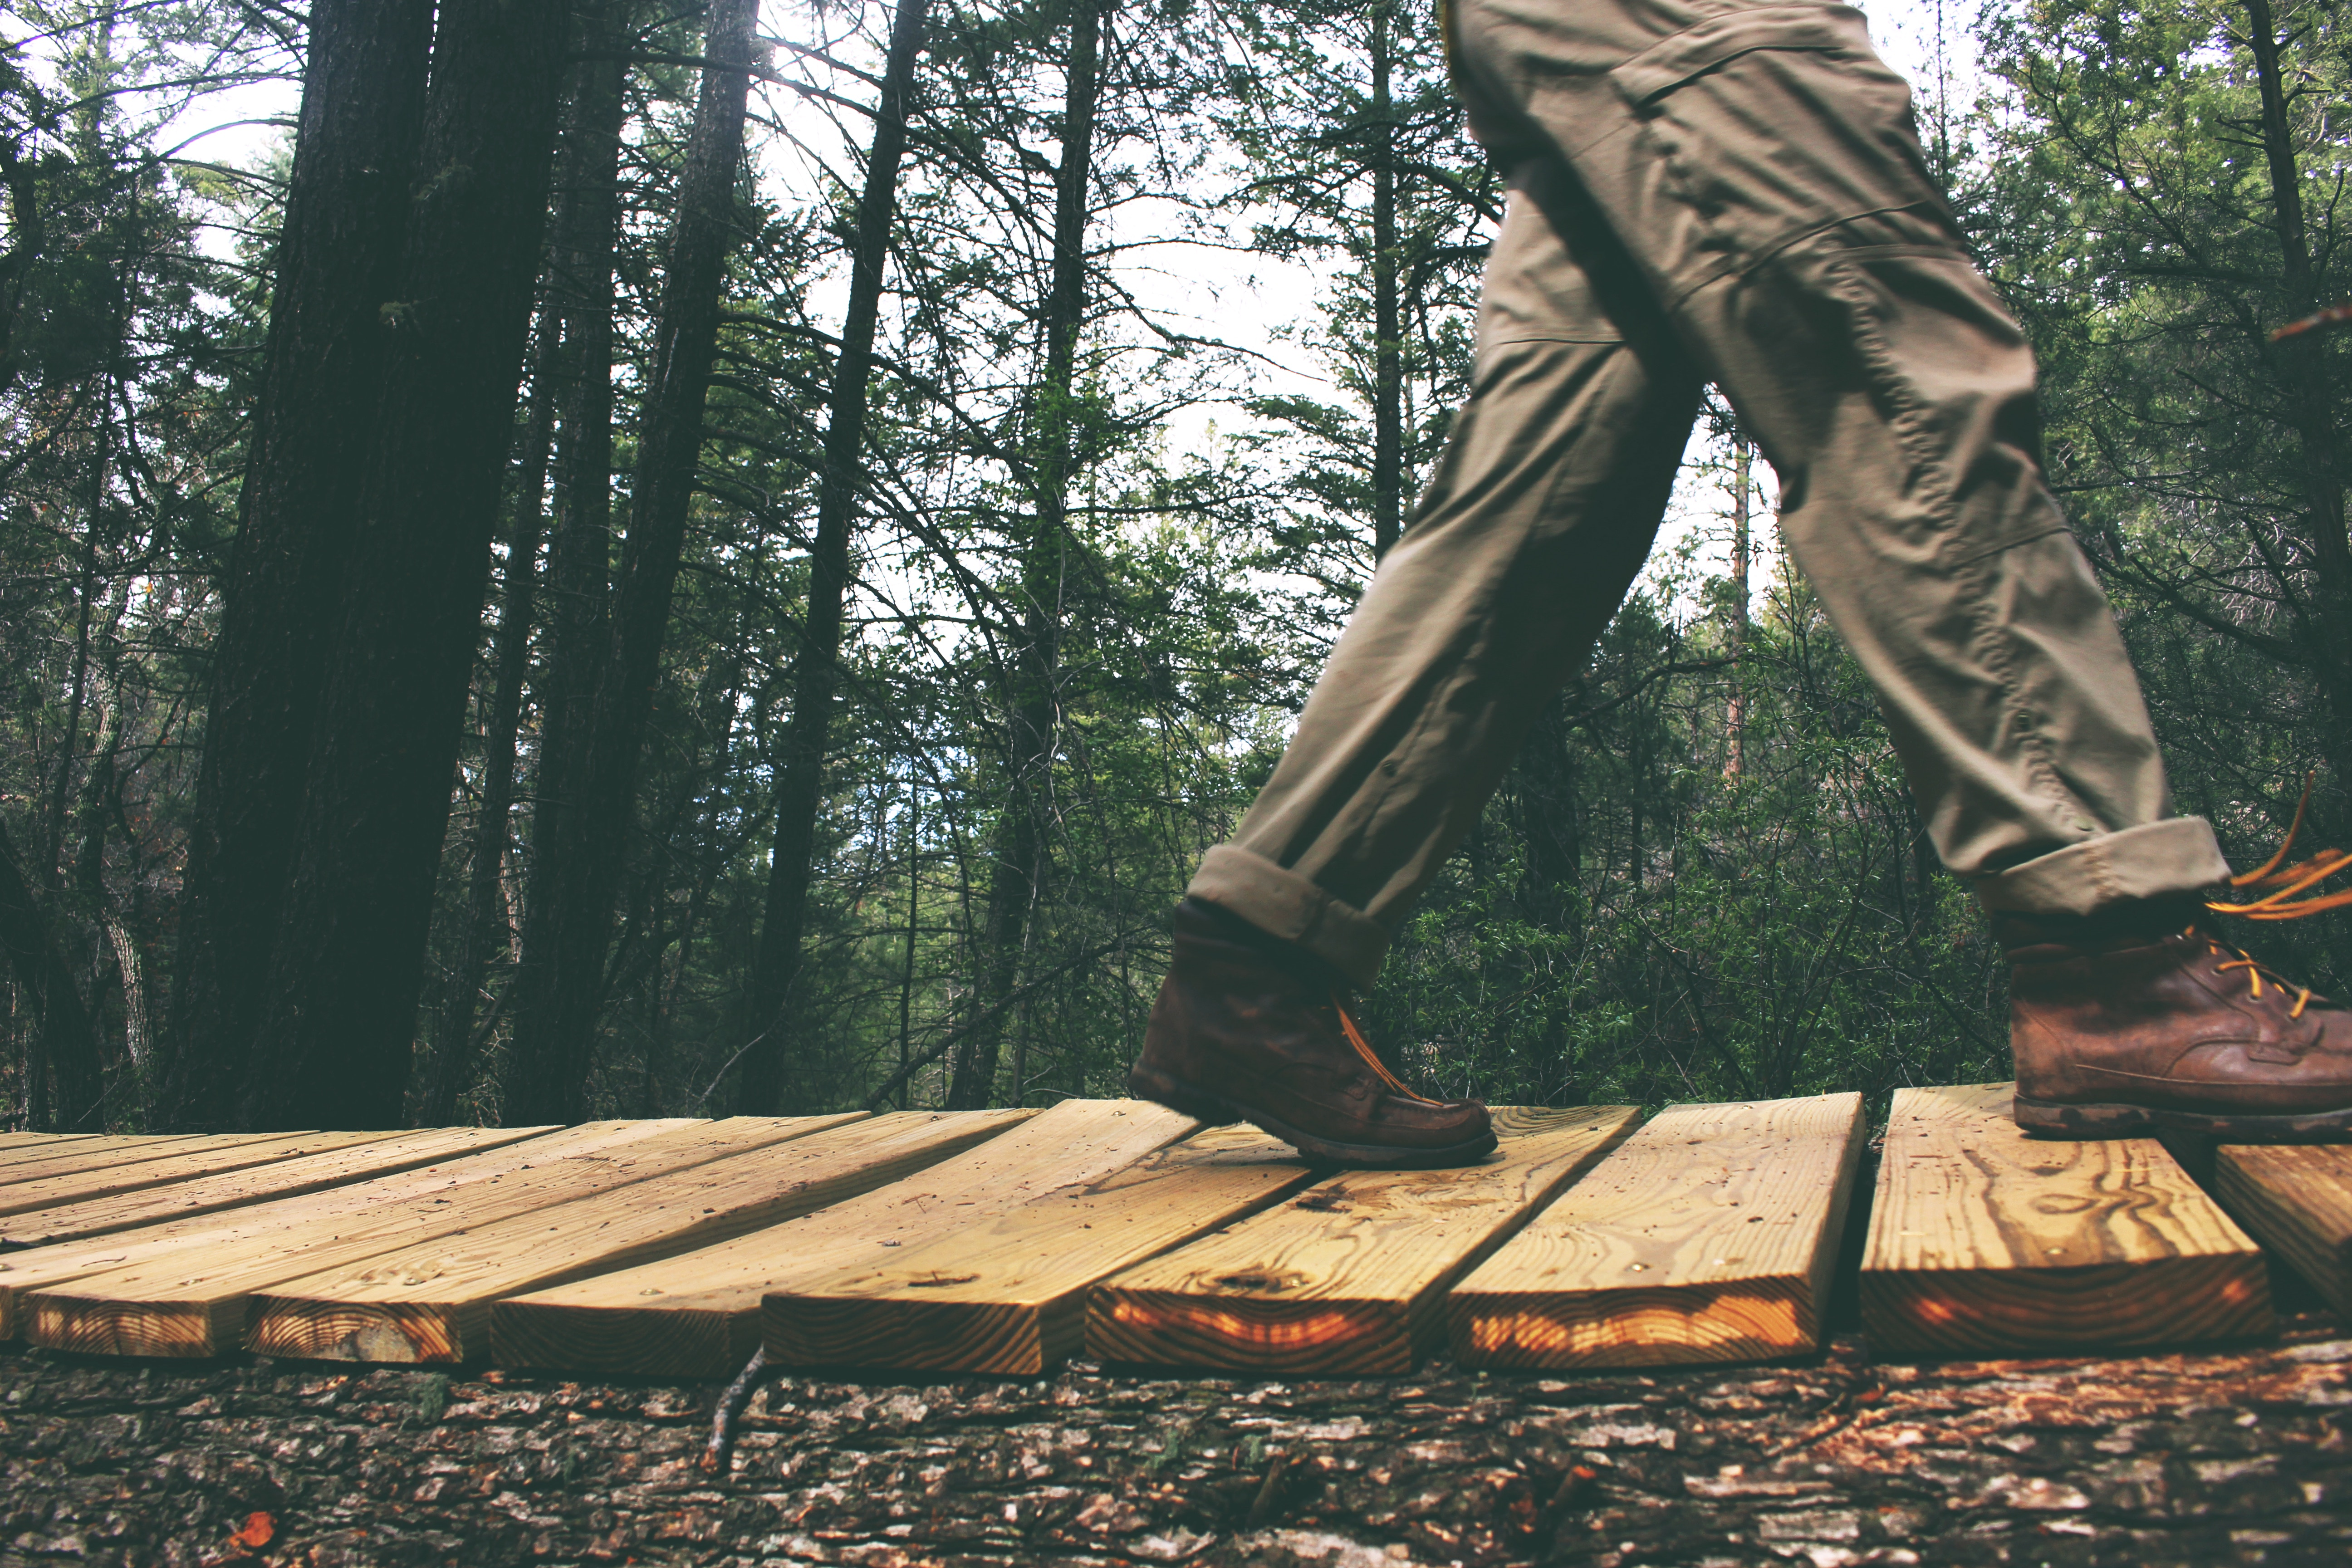 A walk in the woods can improve mental health. Photo by Lacey Raper on Unsplash